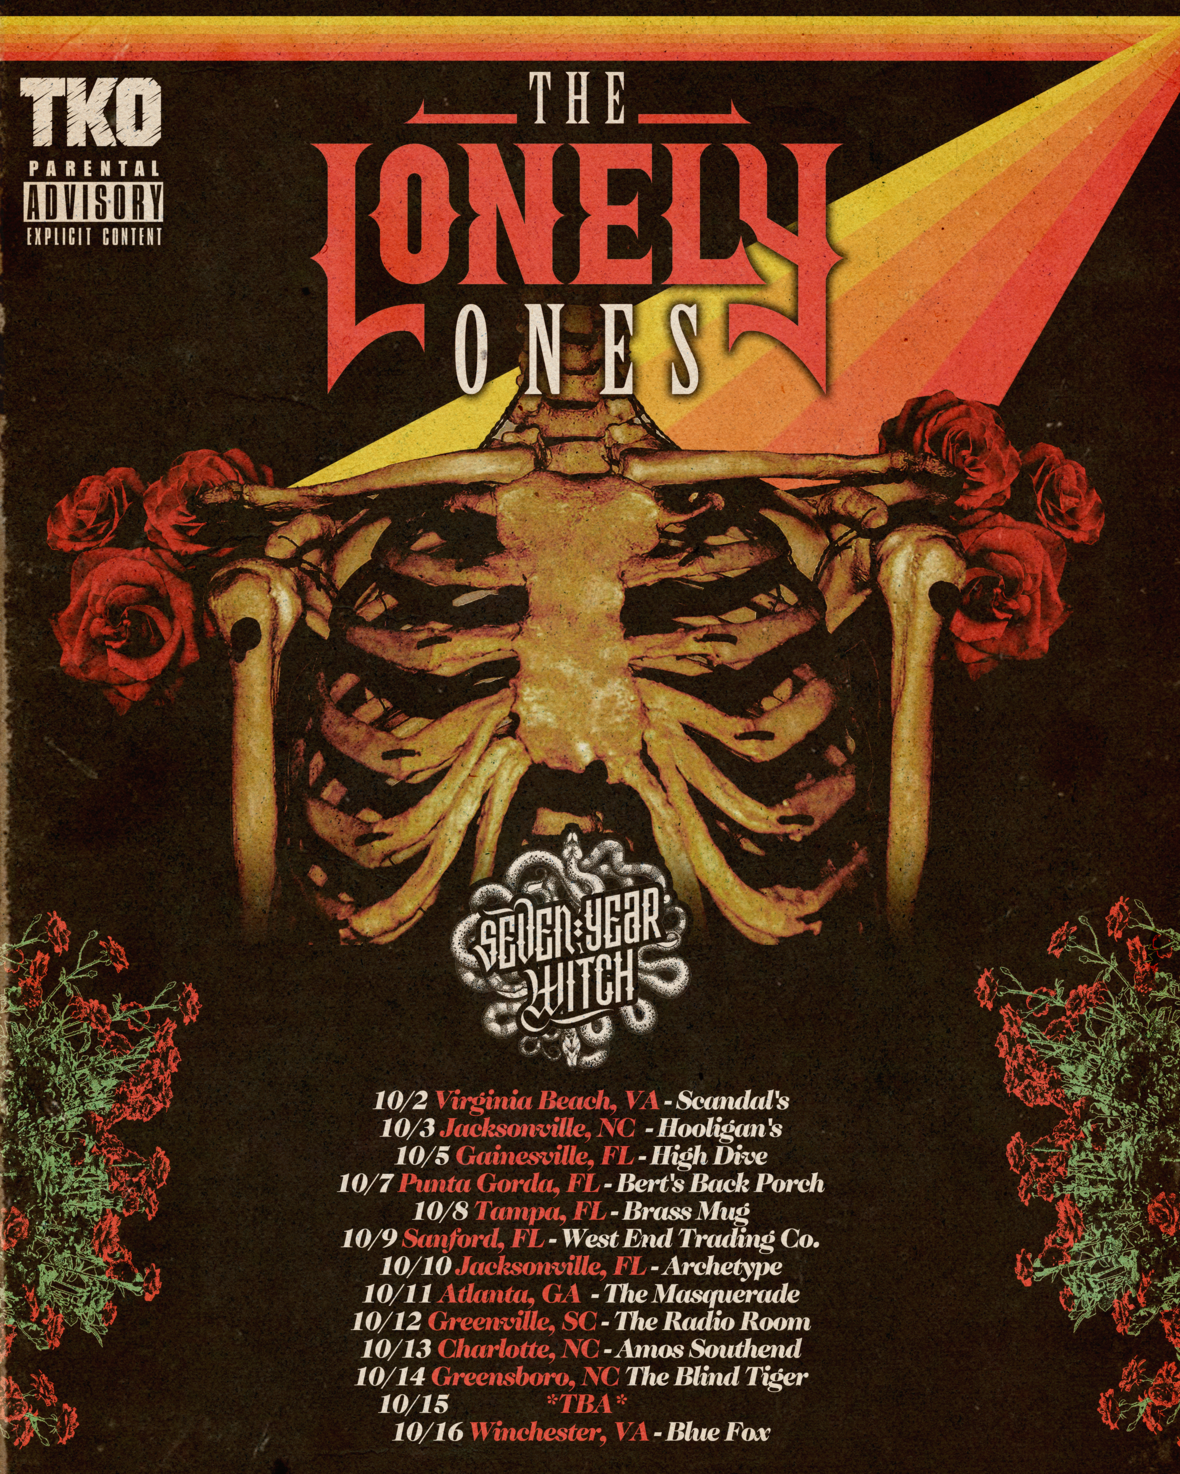 THE LONELY ONES October Tour Poster NO 10-15 PIPESTEM